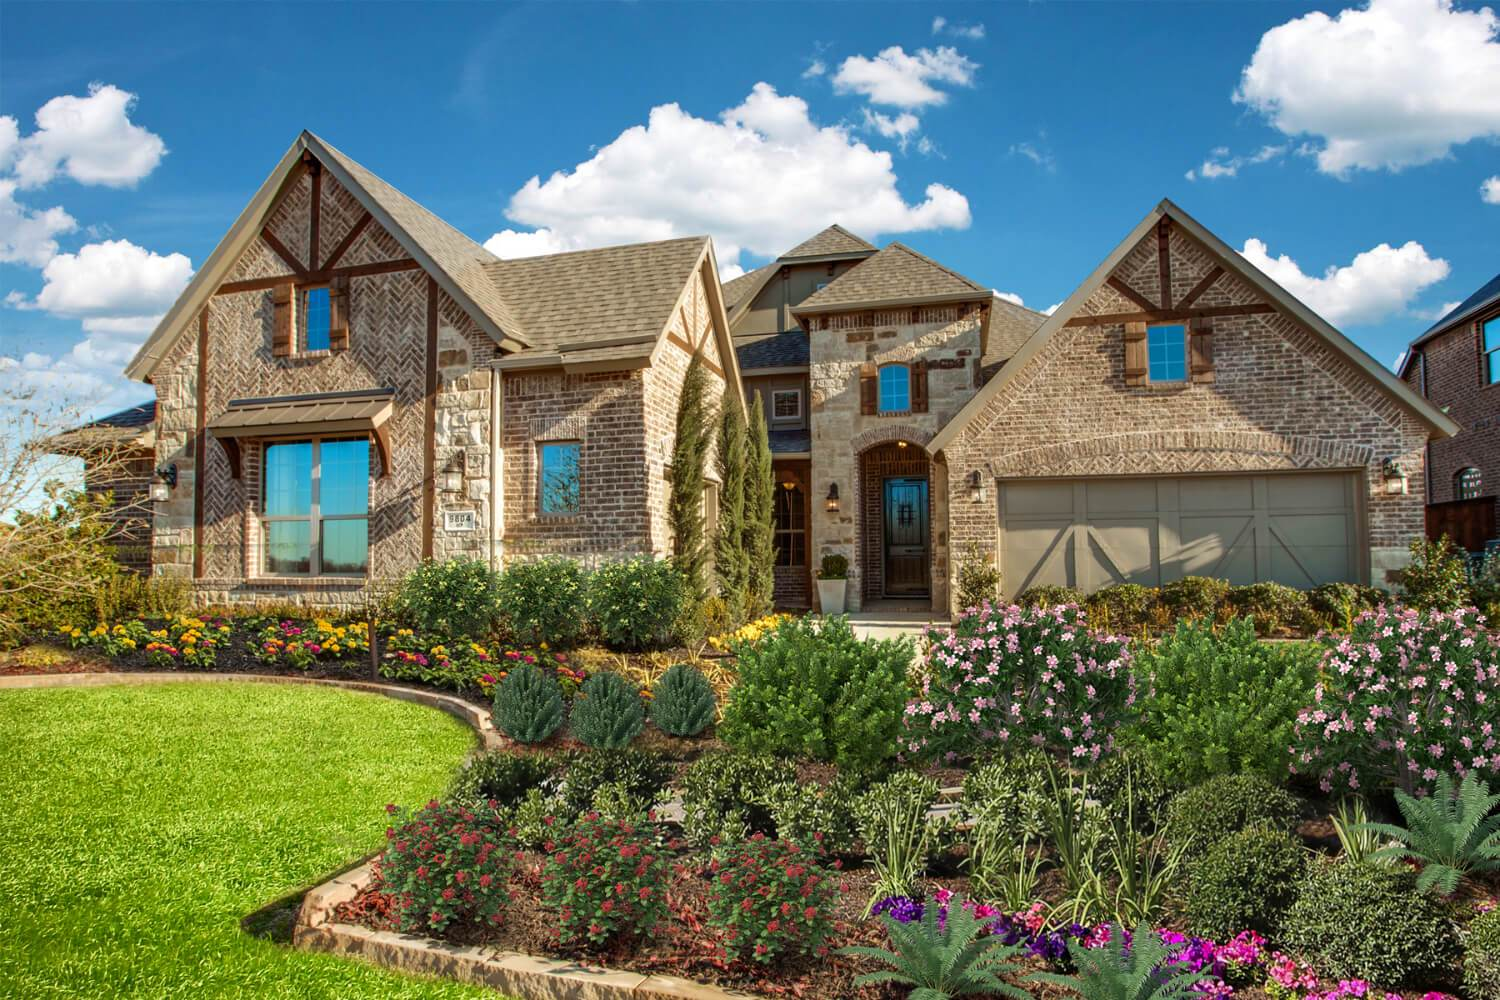 Single Family for Active at Tuscola 9804 Grouse Ridge Ln Oak Point, Texas 75068 United States